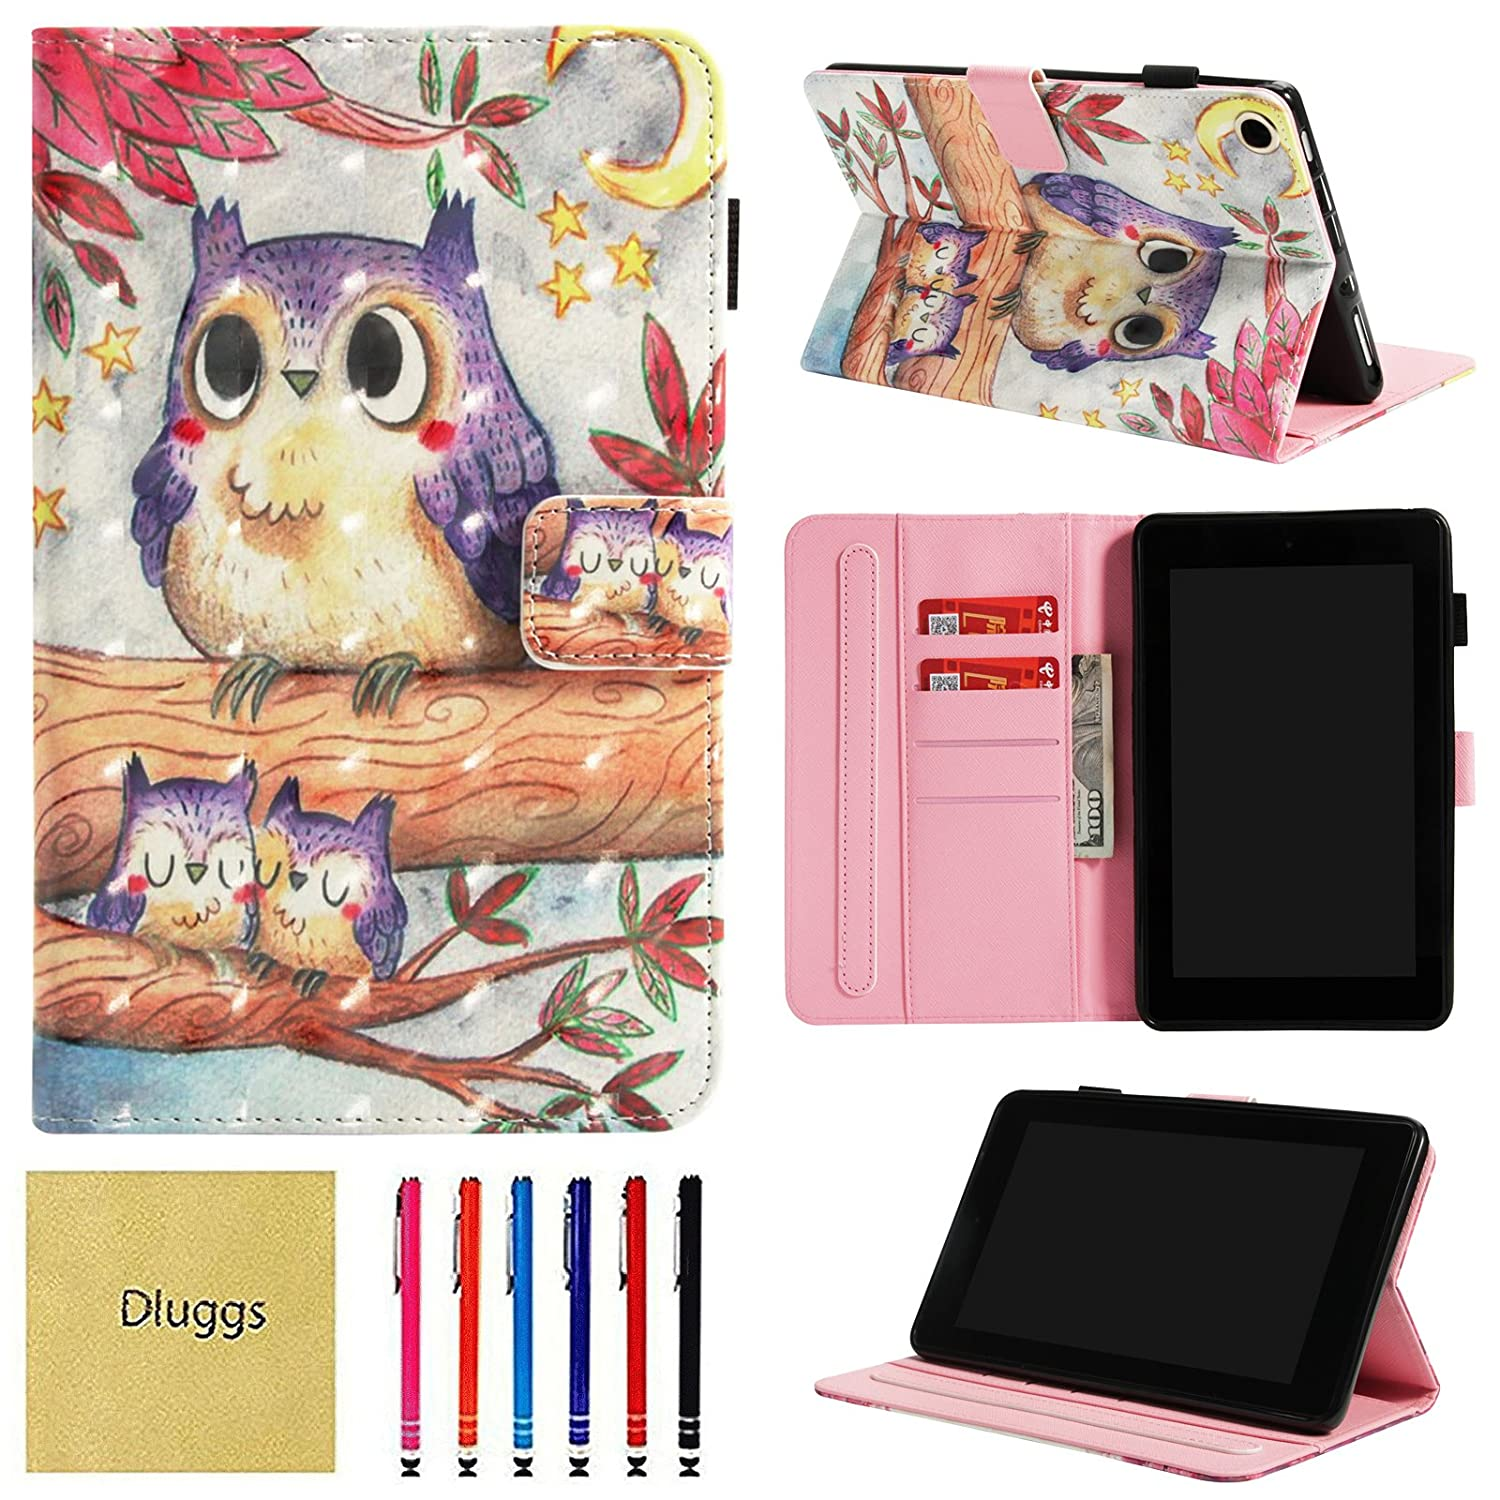 Dluggs Case for All-New  Fire HD 8 Tablet, Folio Smart Case [3D Painting] with Auto Wake/Sleep Feature for Kindle Fire HD 8 7th Generation 2017/6th Generation 2016 8-Inch, Happy Owls MLGS0804